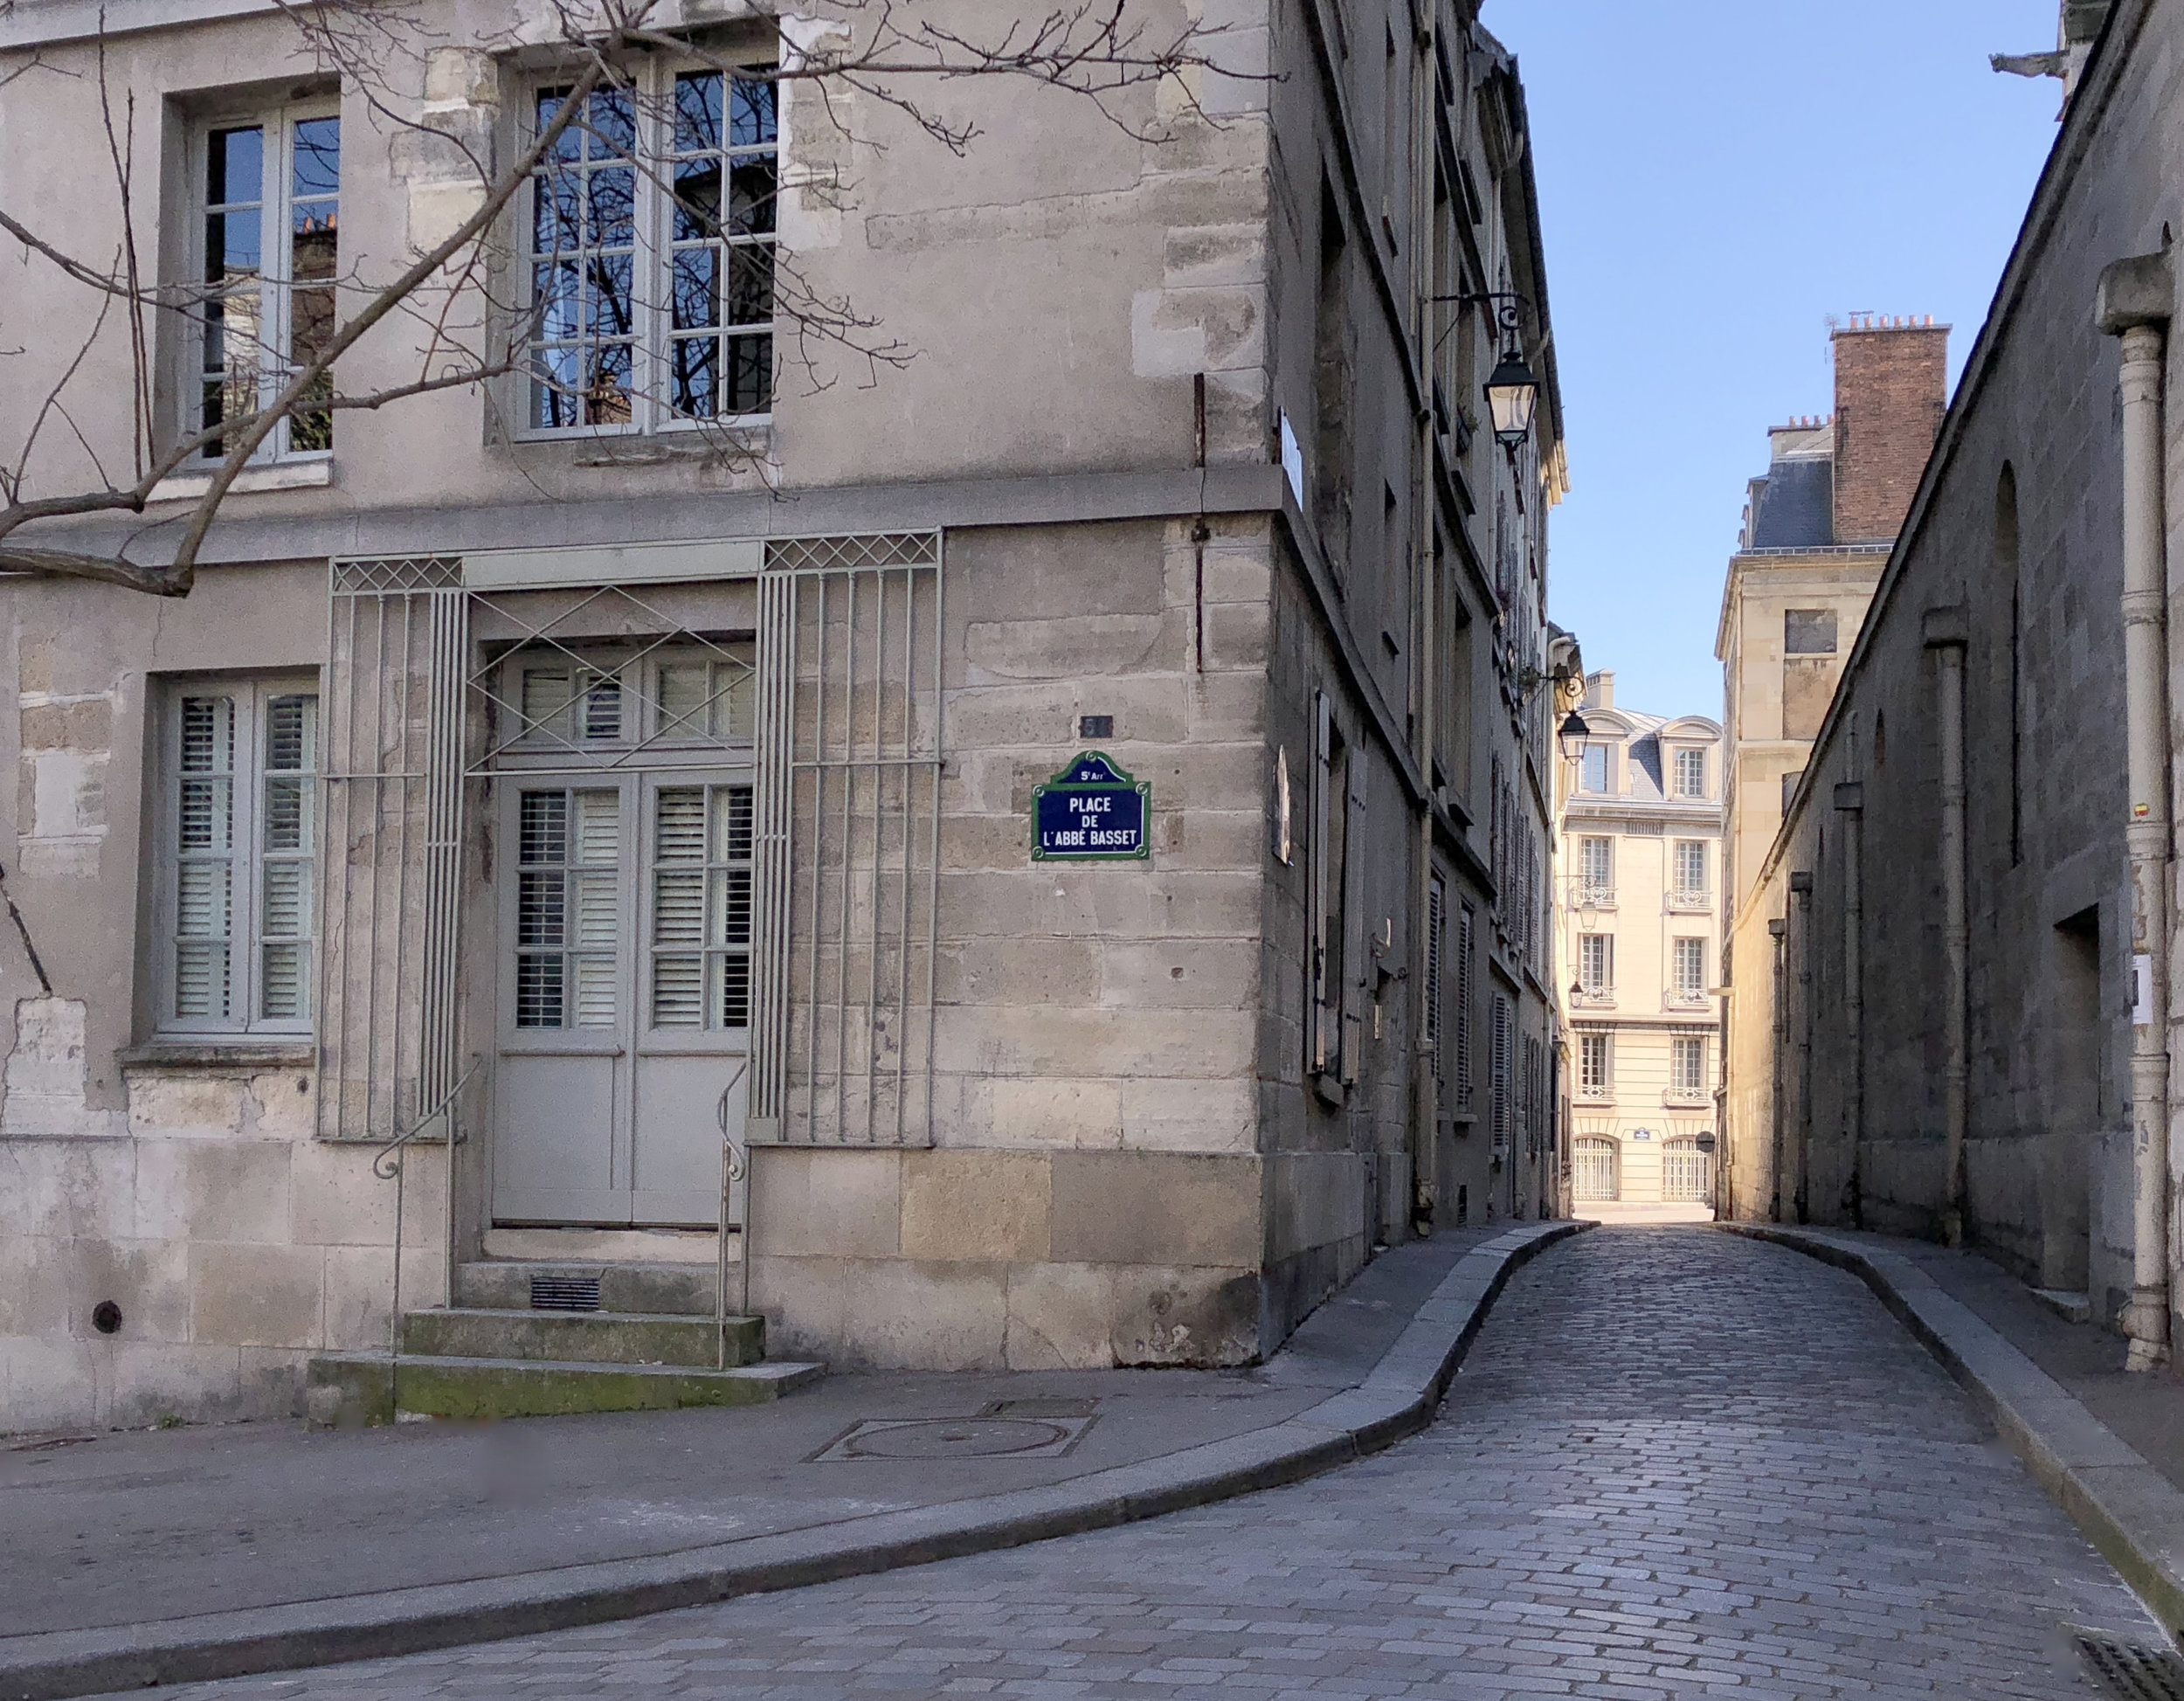 You look down this street to see a vintage Peugeot approaching. The car pulls over to invite you into Paris of the 1920s — Hemingway, Scott and Zelda, Gertrude Stein, Picasso, Dali, Josephine Baker, Man Ray…